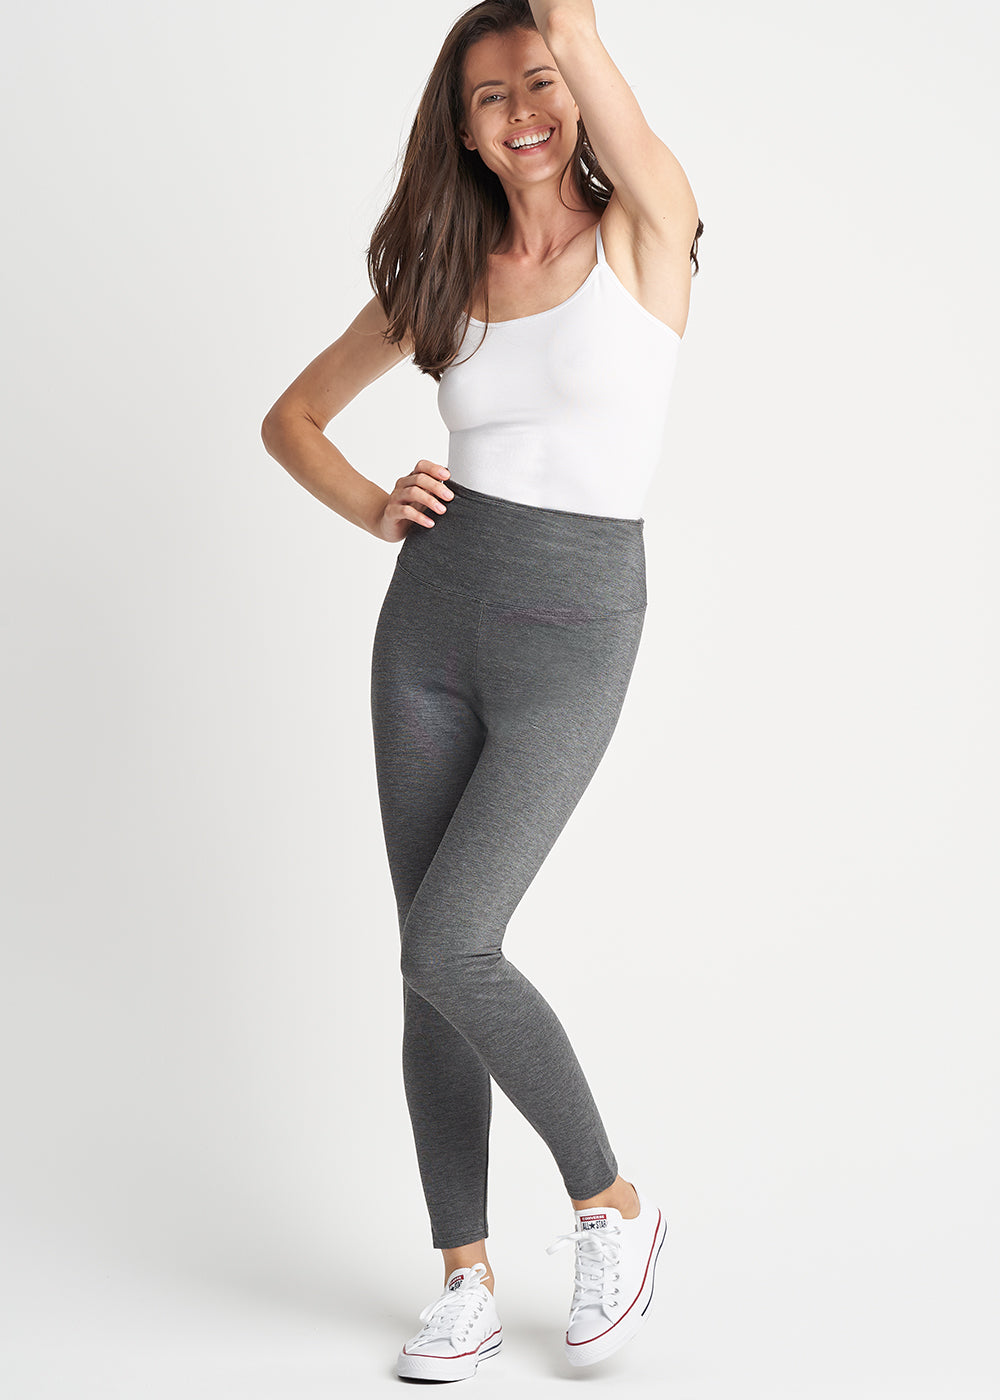 Heather Charcoal | 5' 10"